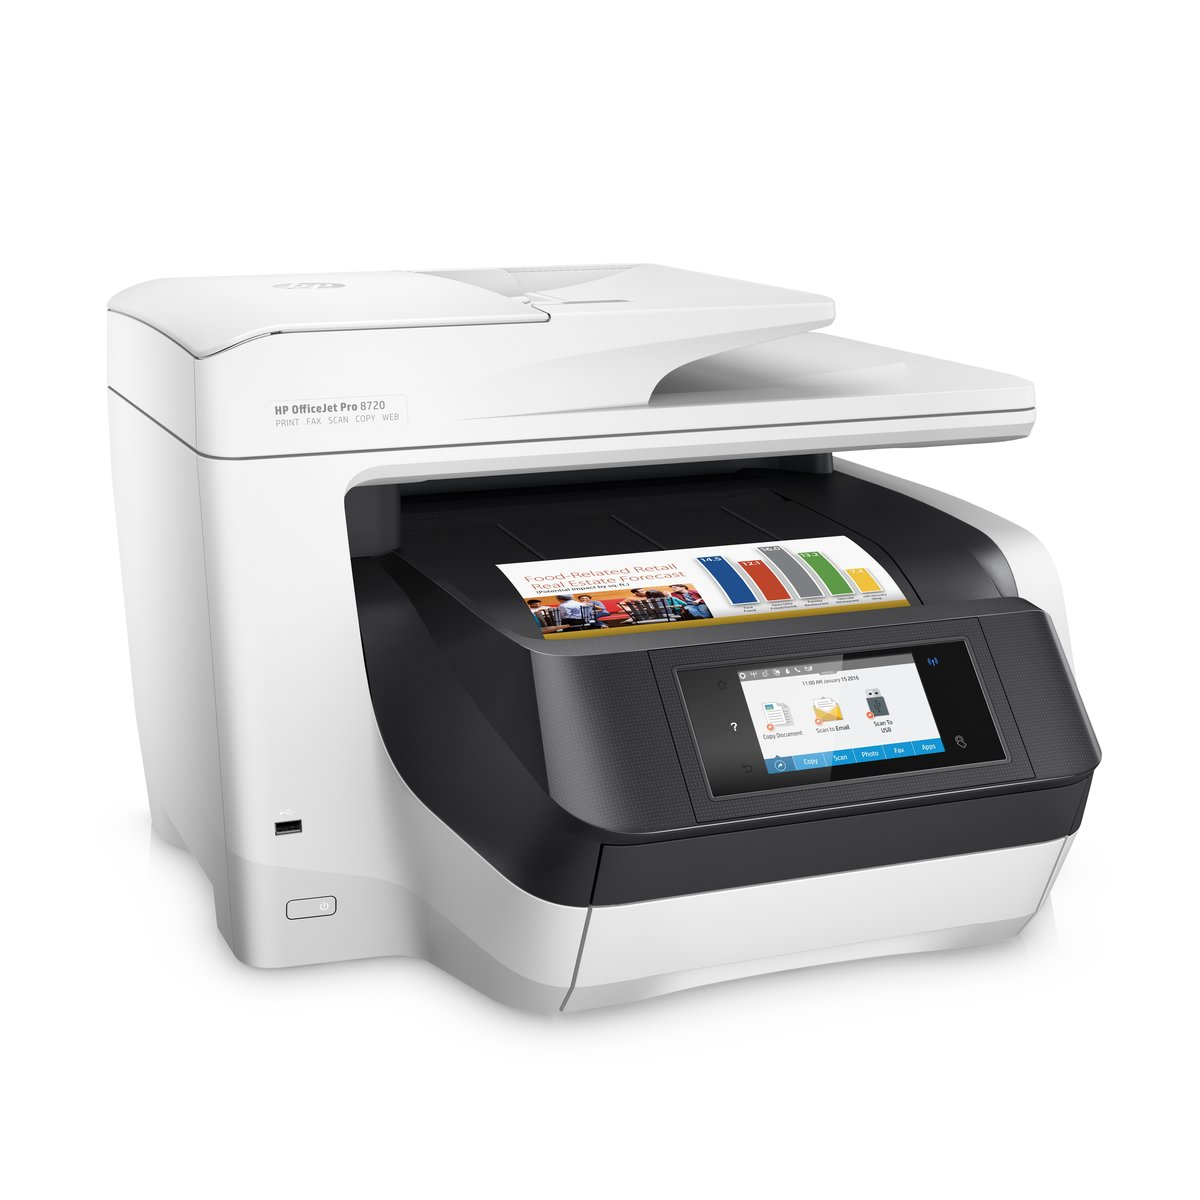 Office depot color printing costs - Hp Officejet Pro 8720 Wireless All In One Printer With Mobile Printing White M9l75a By Office Depot Officemax